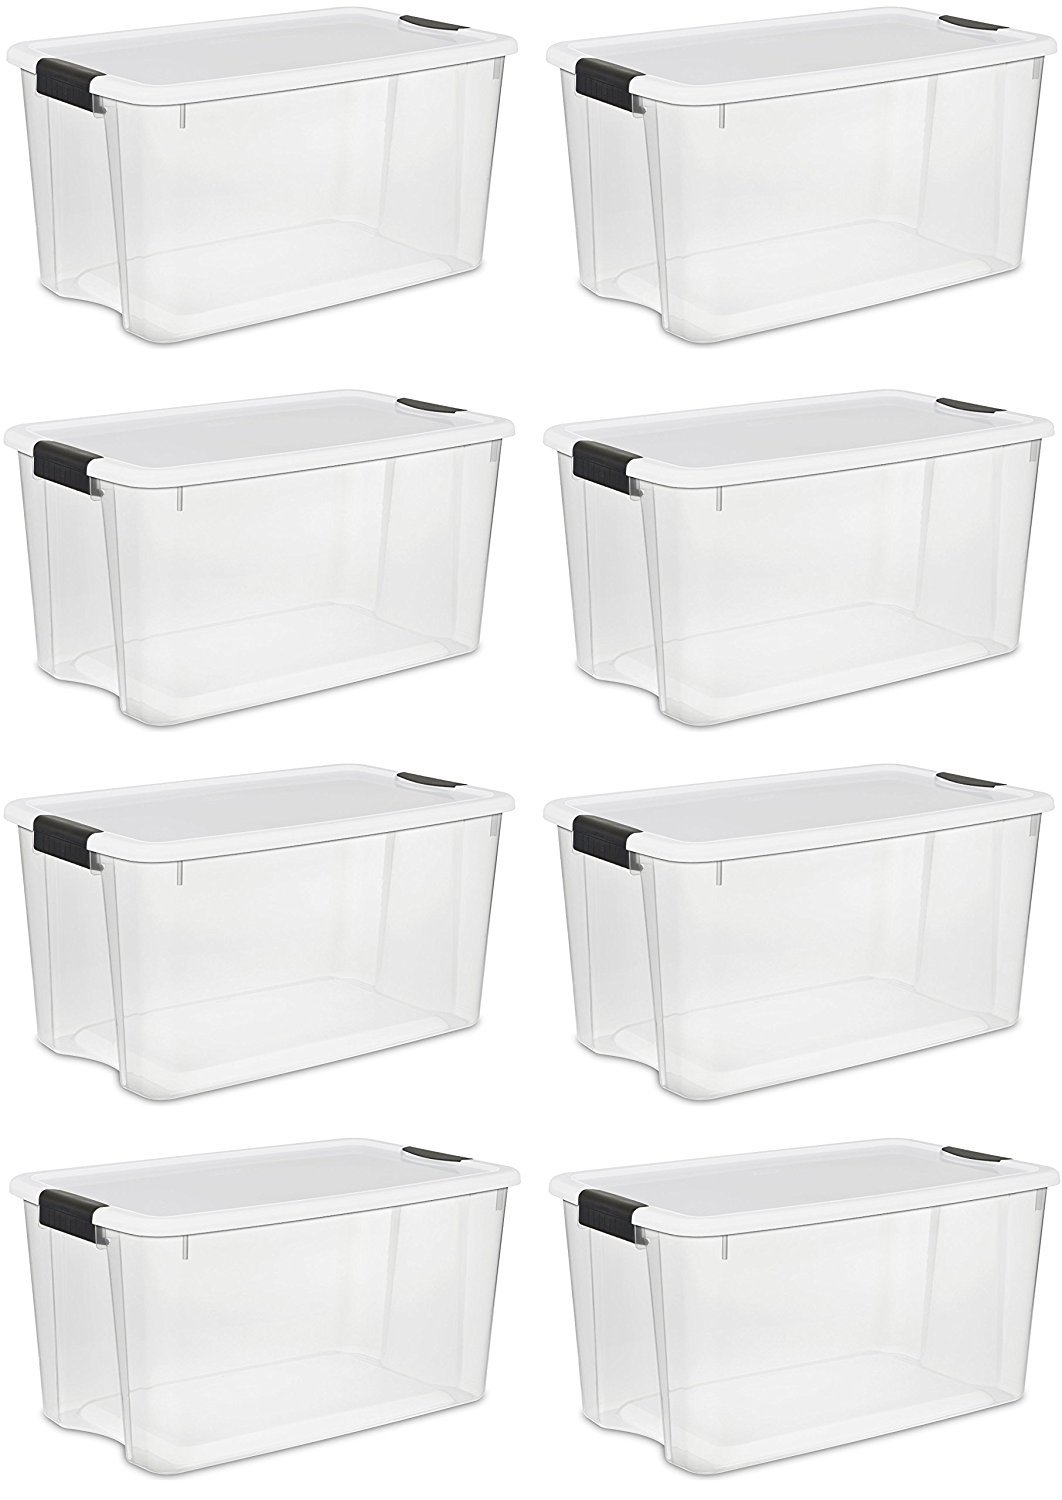 Sterilite 116 Quart/110 Liter Ultra Latch Box, Clear with a White Lid and Black Latches, (116 Quart, 8-Pack) by sterilite. (Image #1)